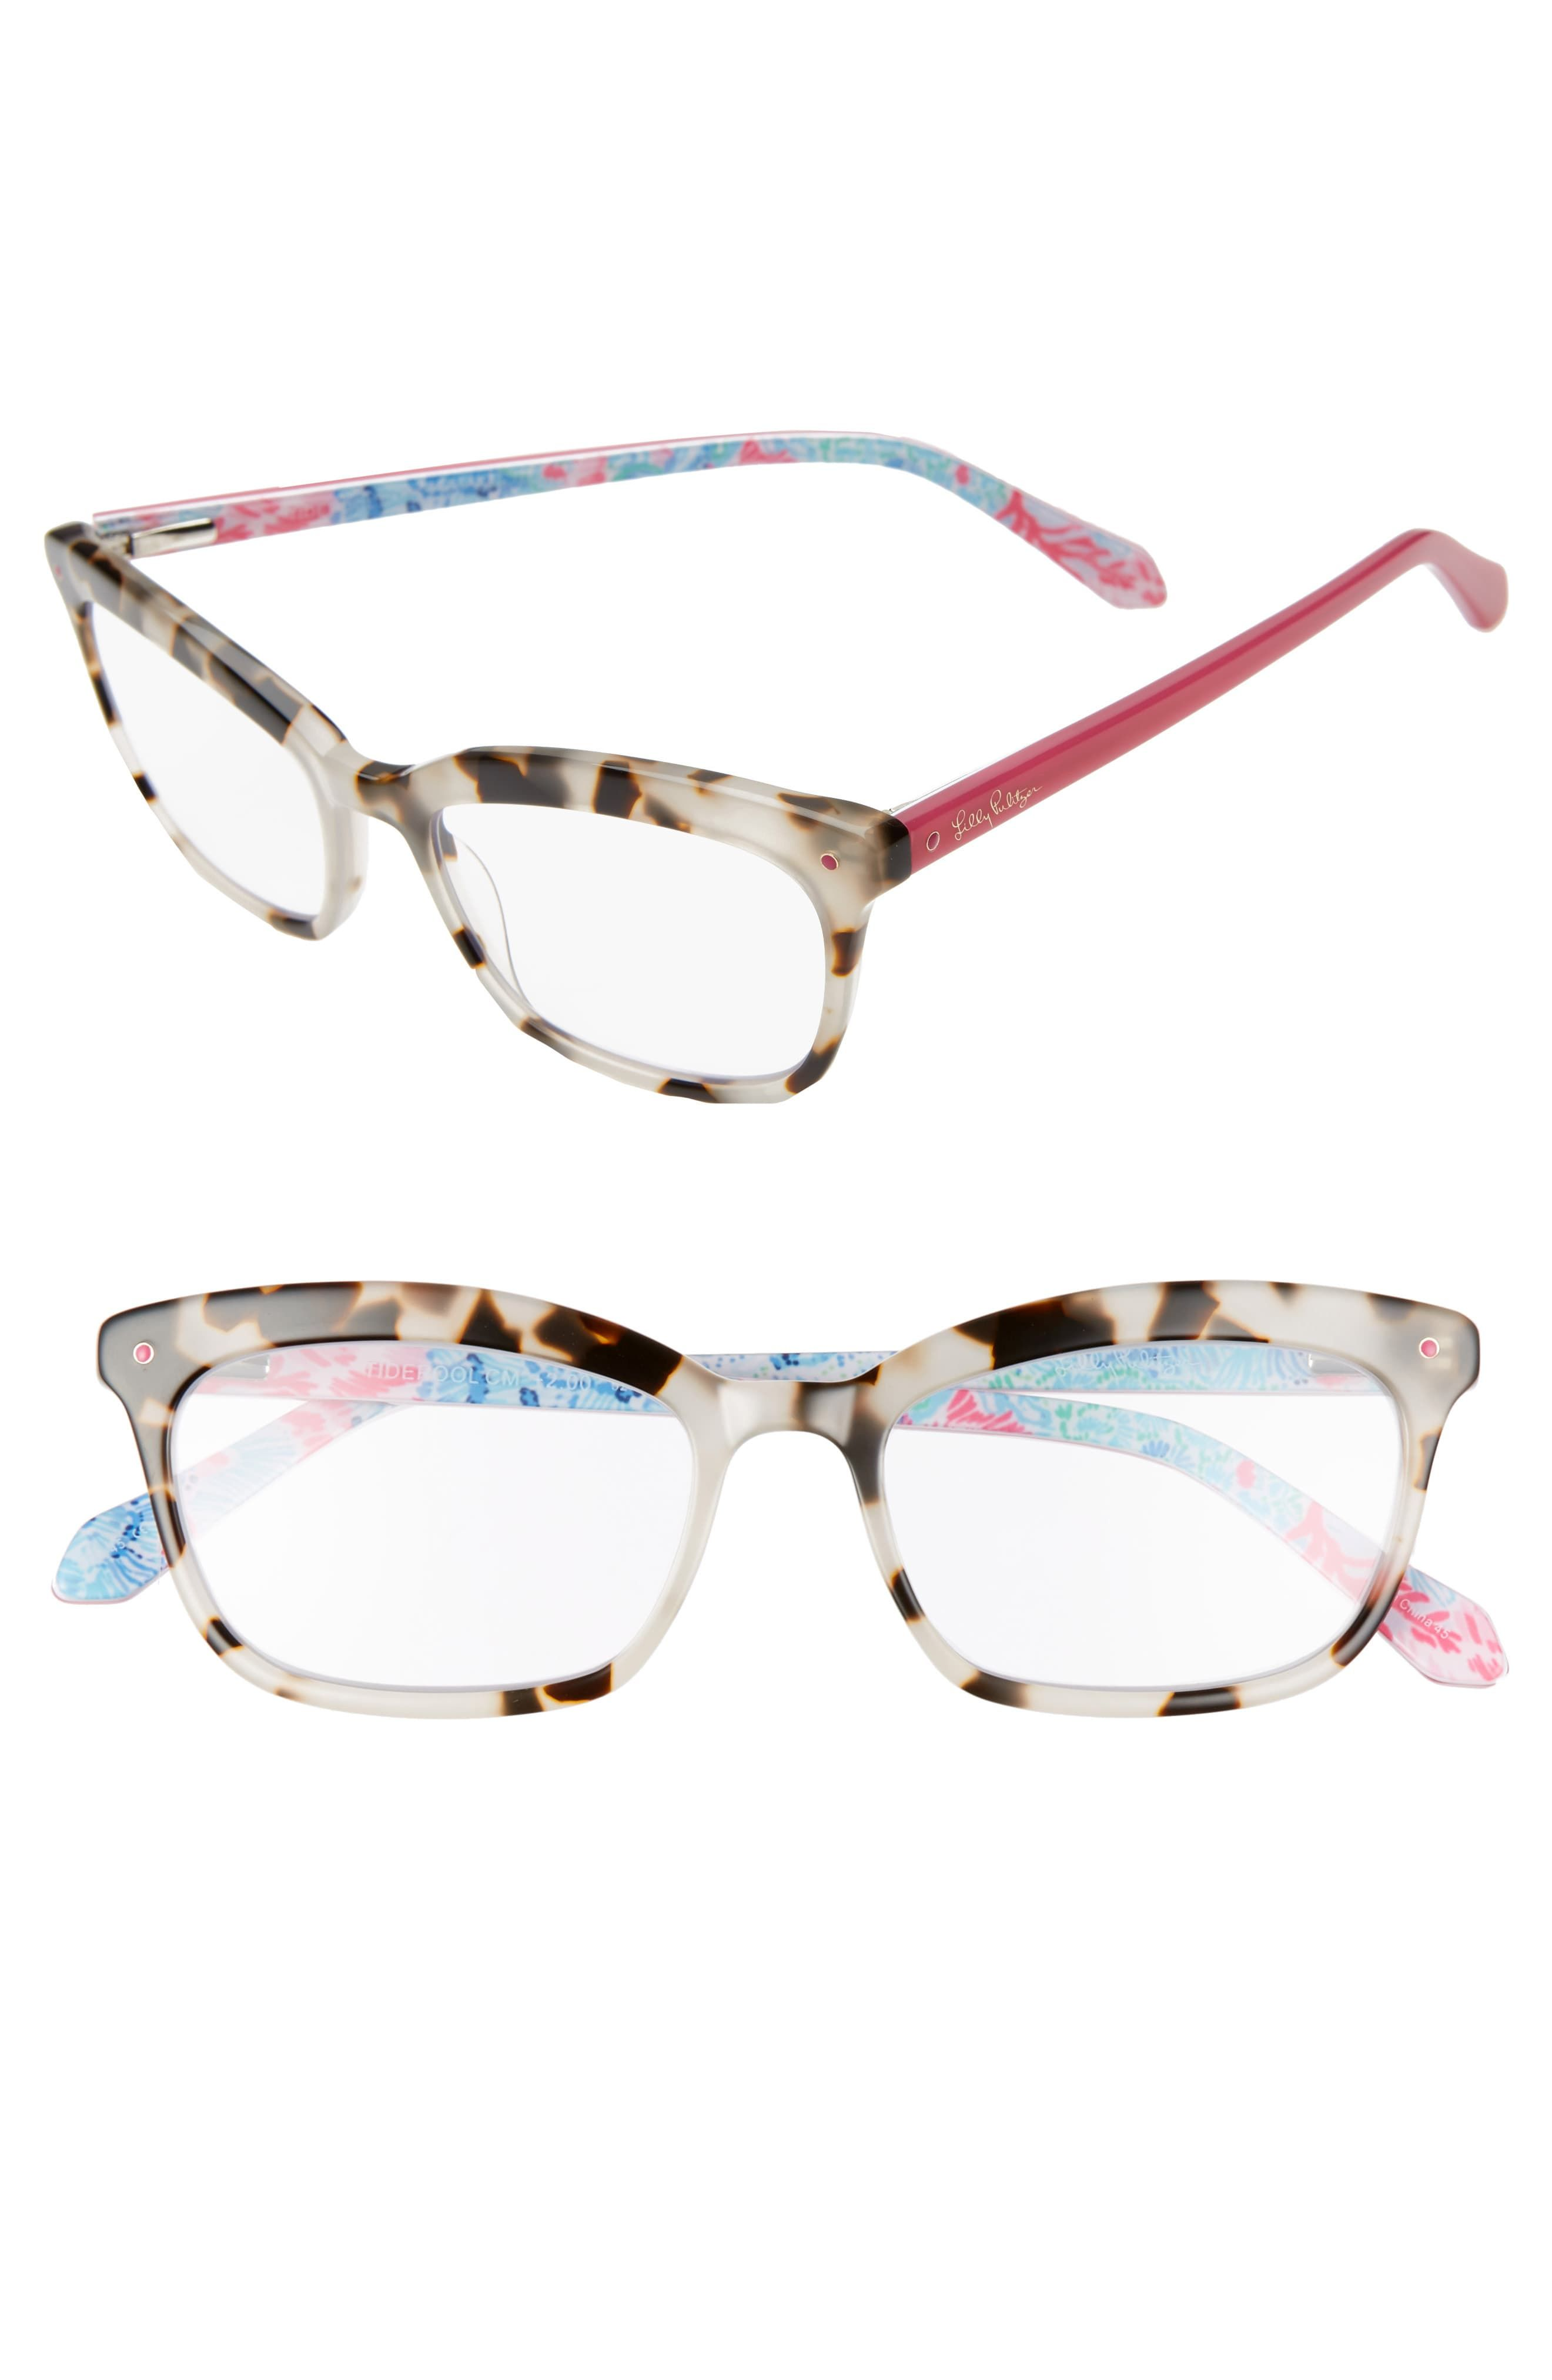 Lilly Pulitzer Tidepool 52mm Reading Glasses Nordstrom In 2021 Glasses Lilly Pulitzer Nordstrom Women